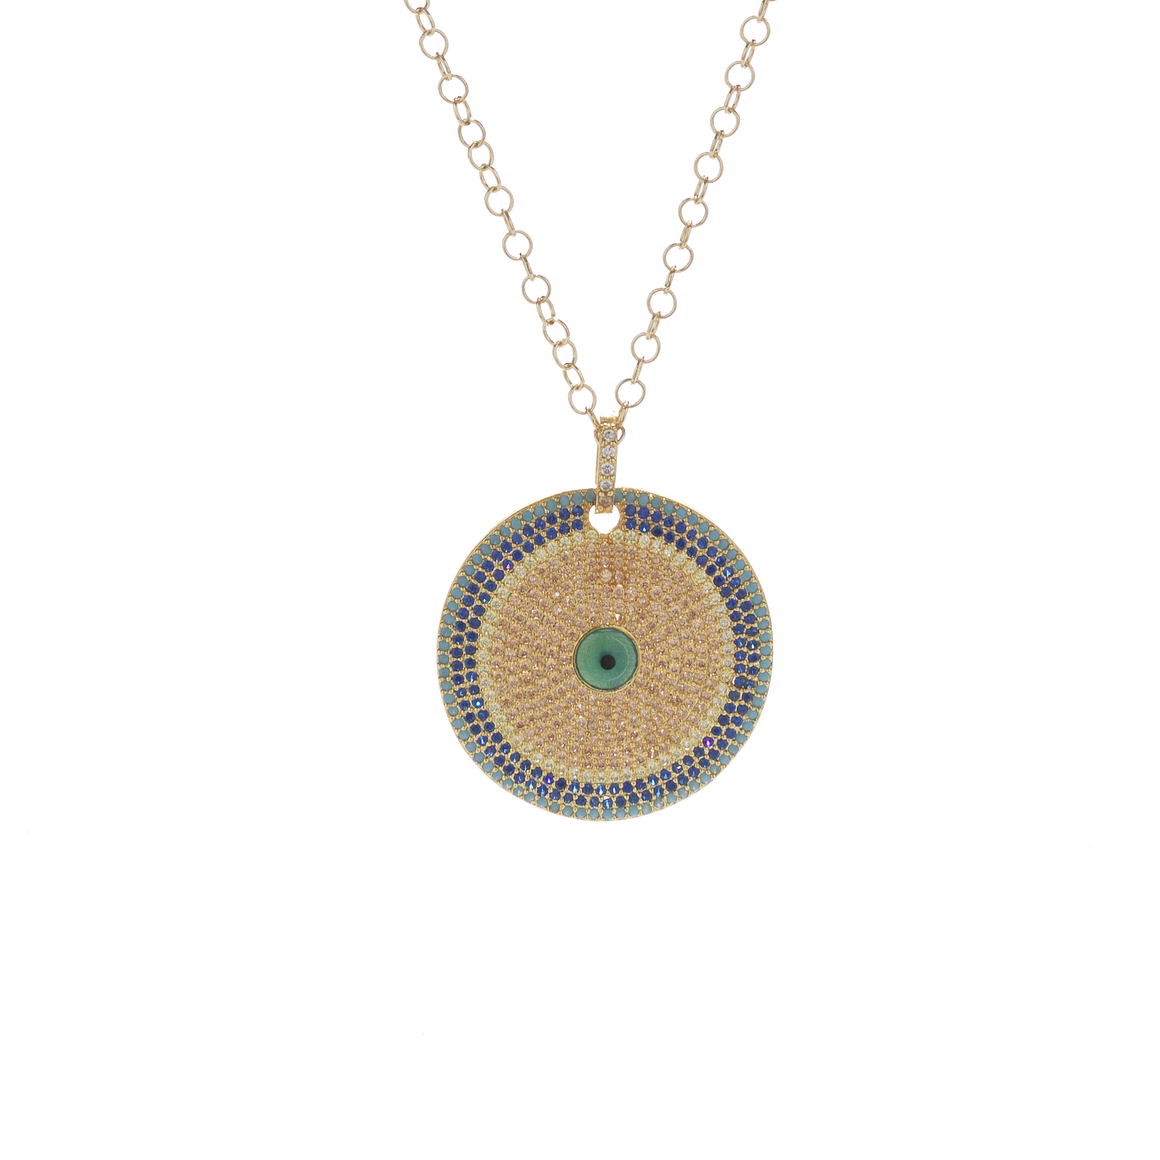 The Circle Medallion Necklace in Gold